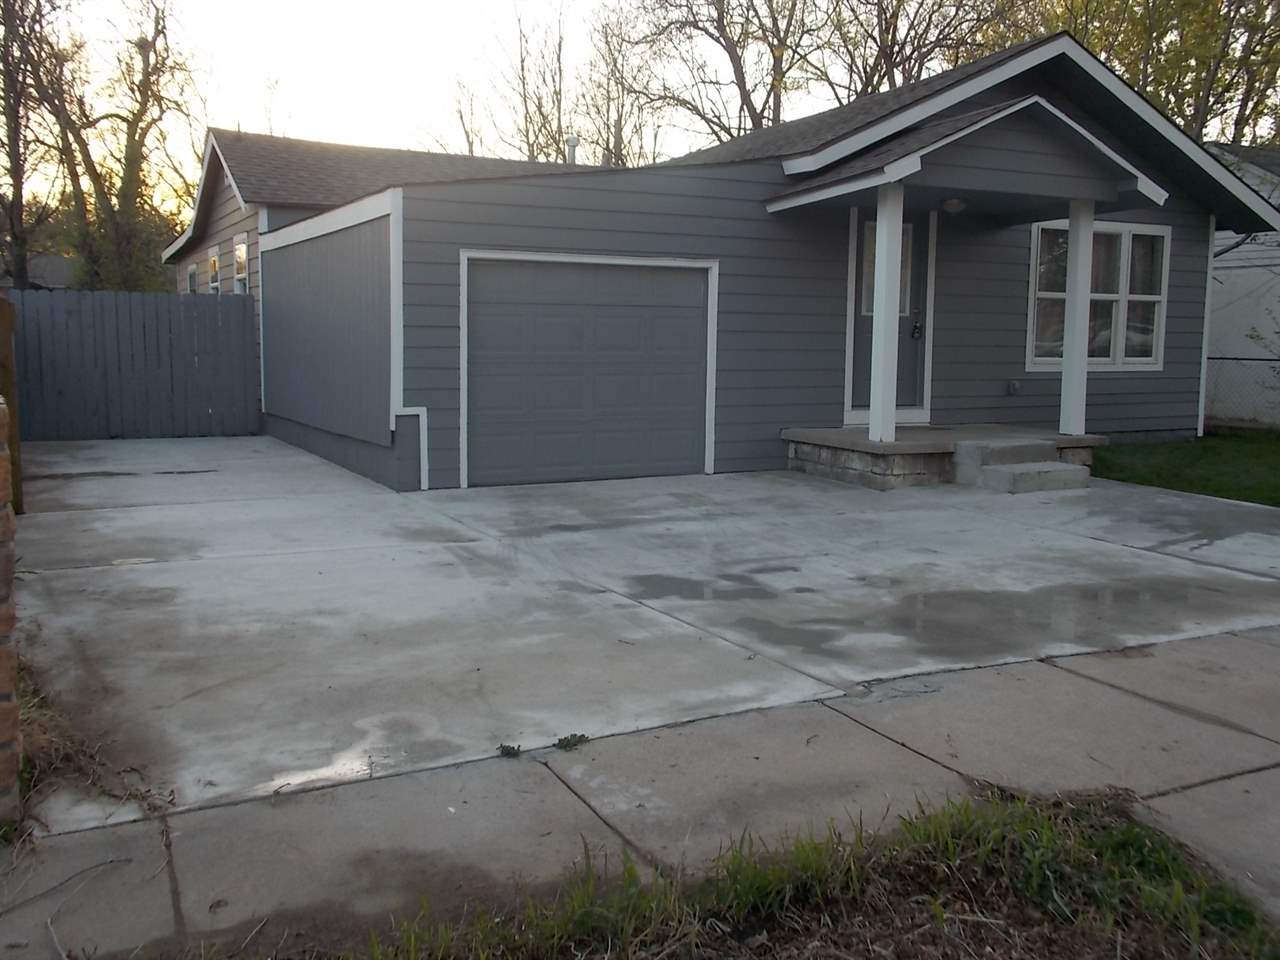 BEAUTIFUL AND FULLY REMODEL RANCH HOME WITH OPEN FLOOR PLAN WITH 3 BEDROOMS, 1 BATH AND REC ROOM. IS